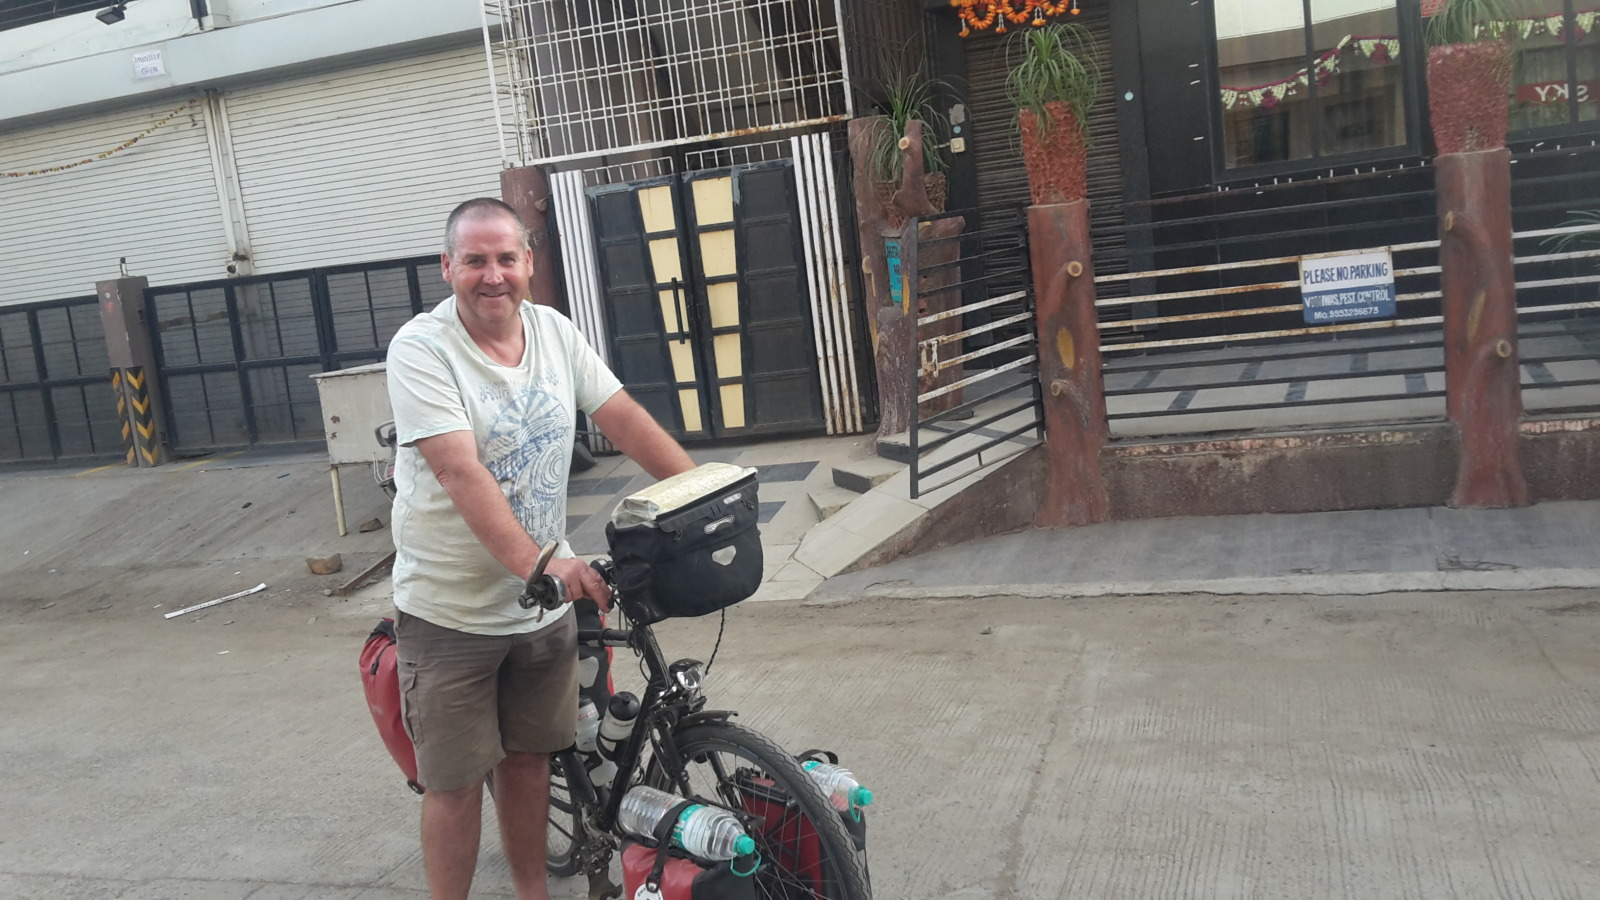 Garry McGivern leaving the hotel in Indore.